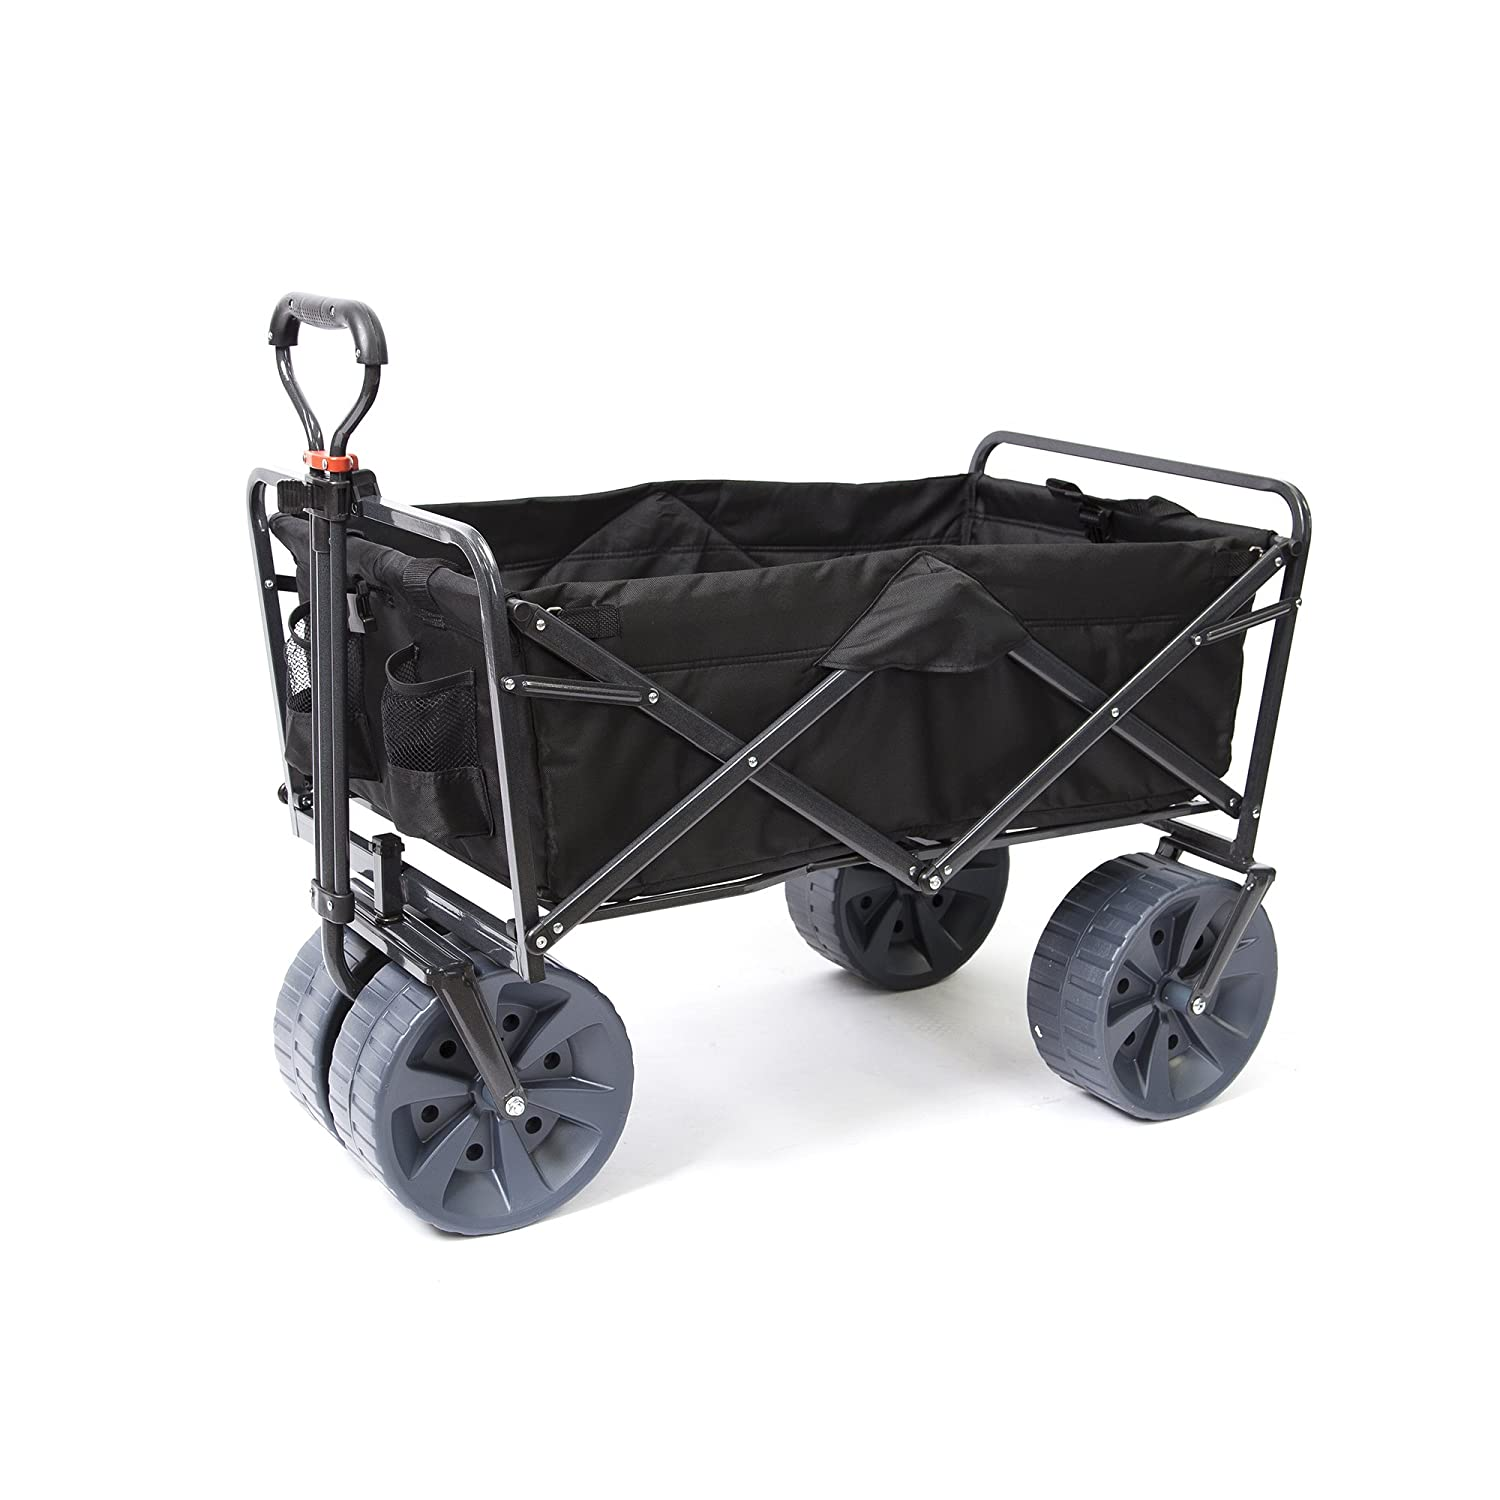 Utility Carts | Shop Amazon.com